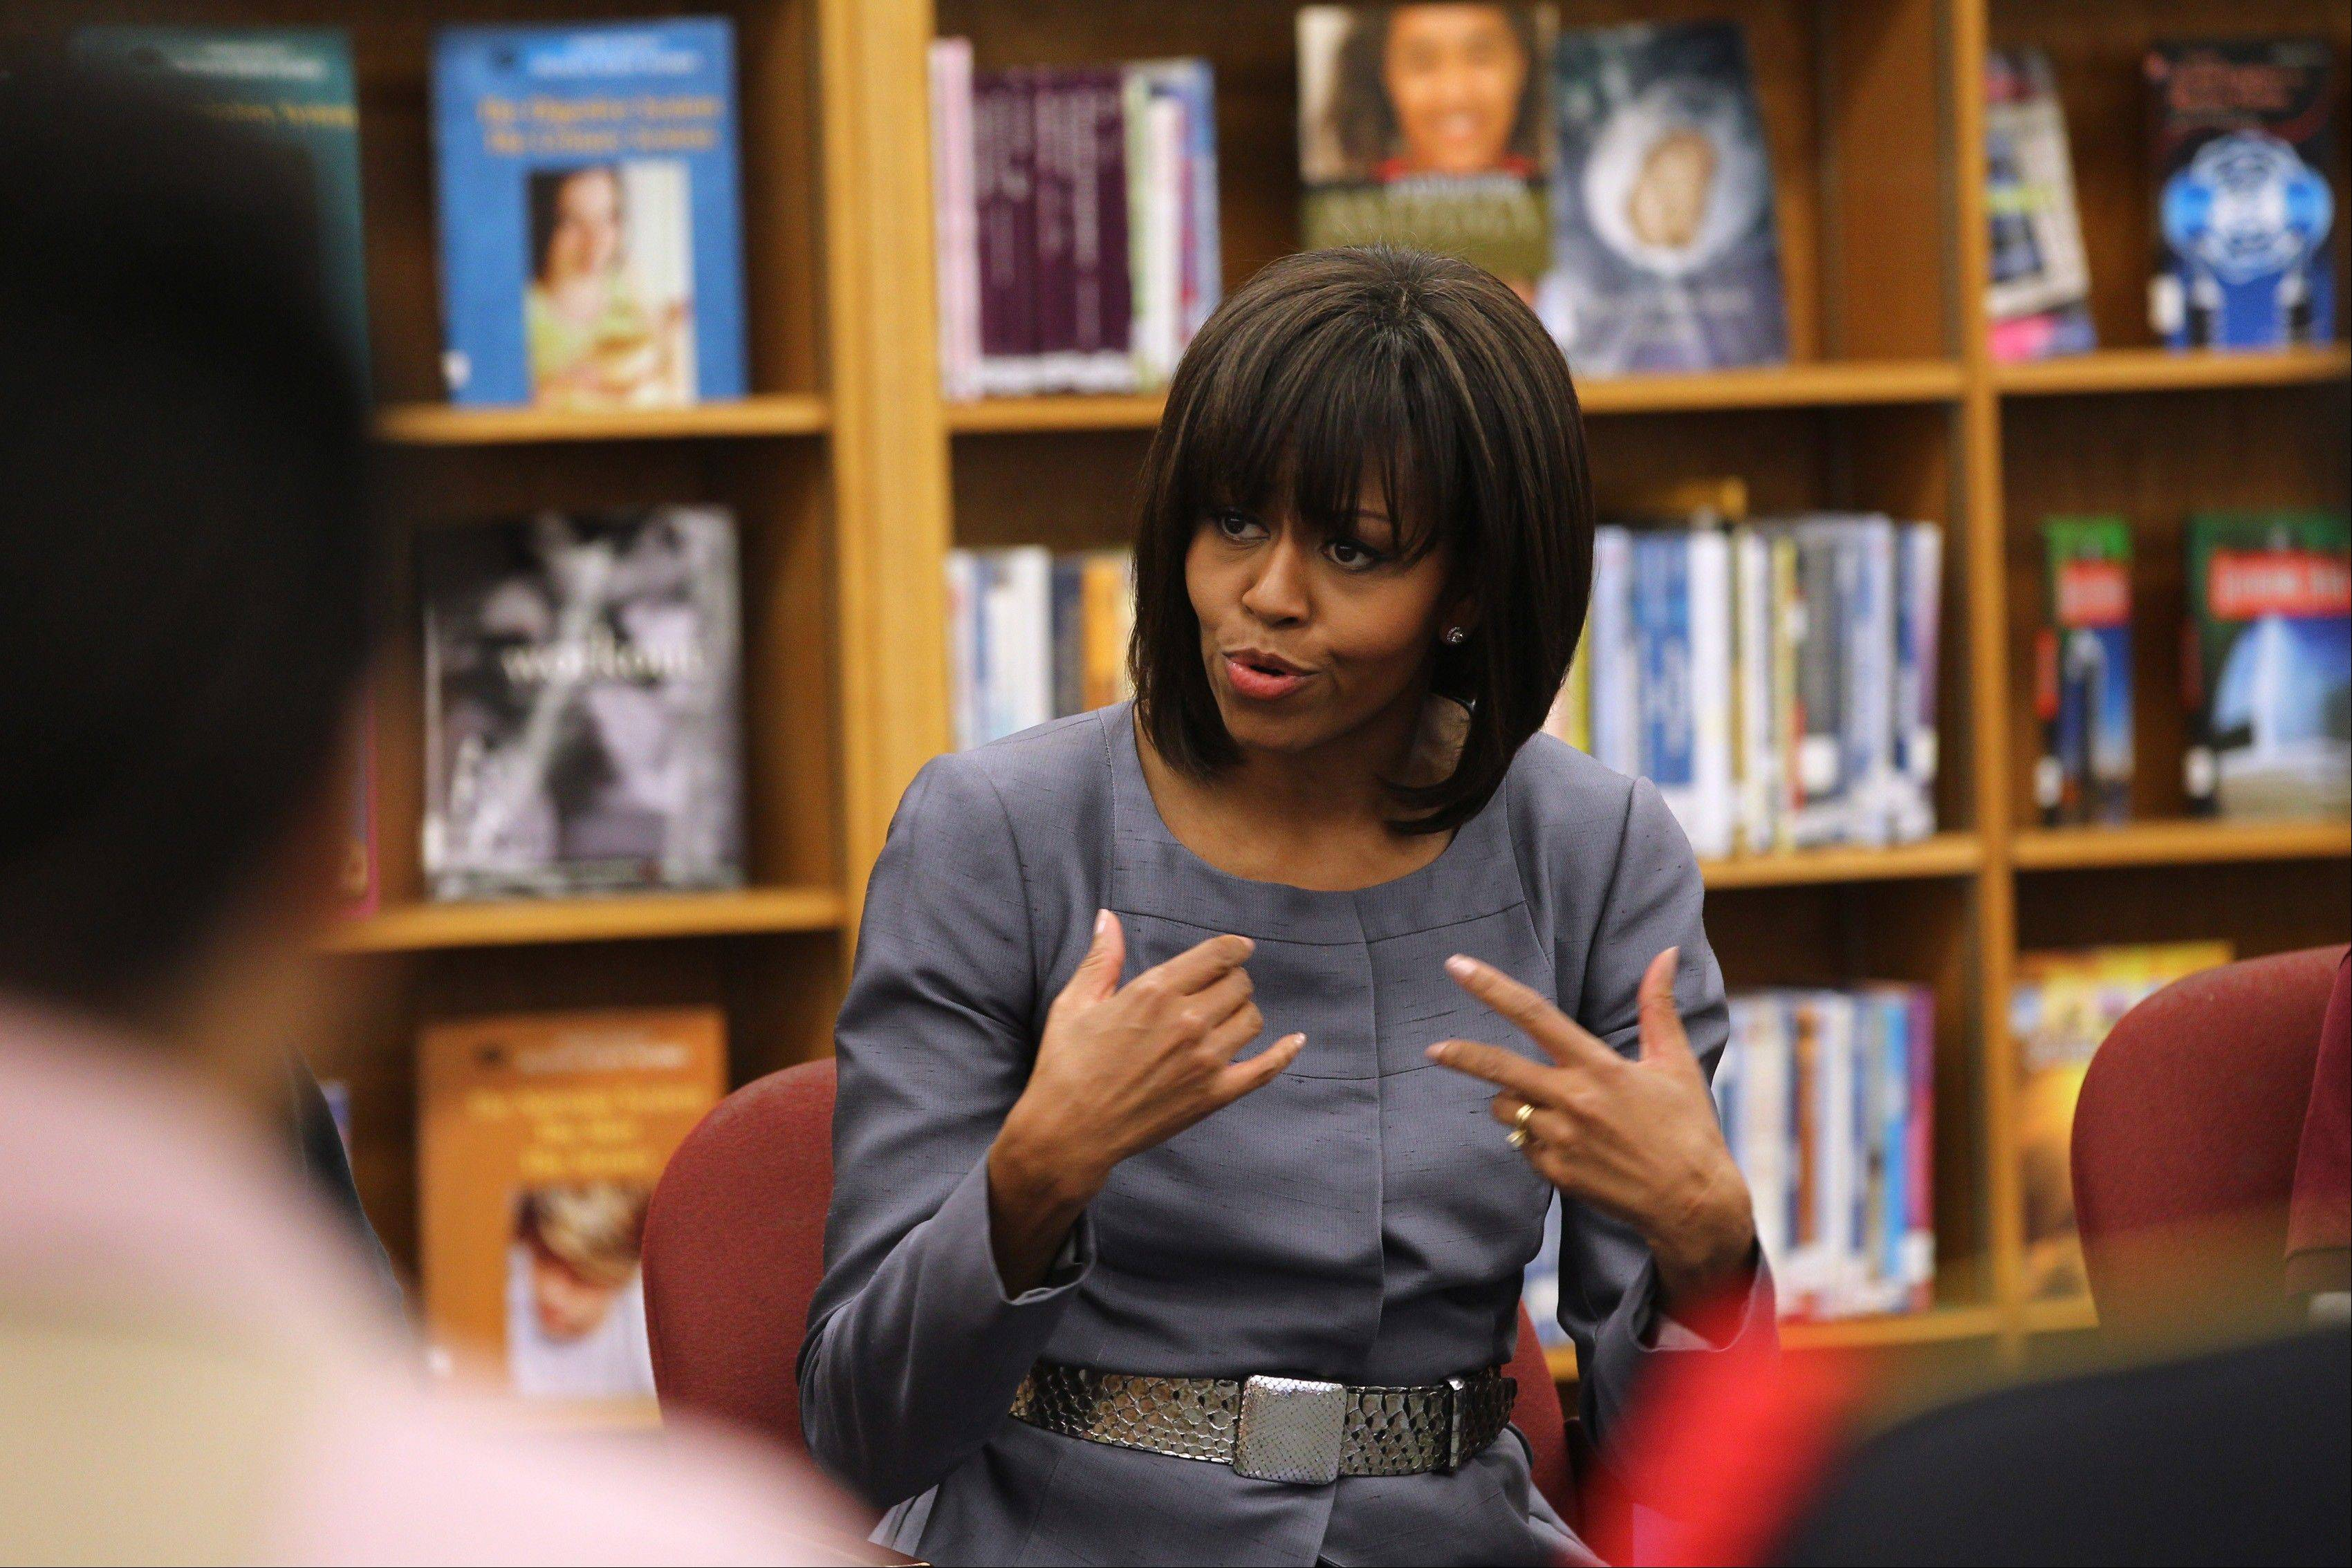 First lady Michelle Obama talks to students at Harper High School in Chicago Wednesday. She also called for more funding for community programs to help break the cycle of gun violence in a deeply personal speech in her hometown of Chicago.